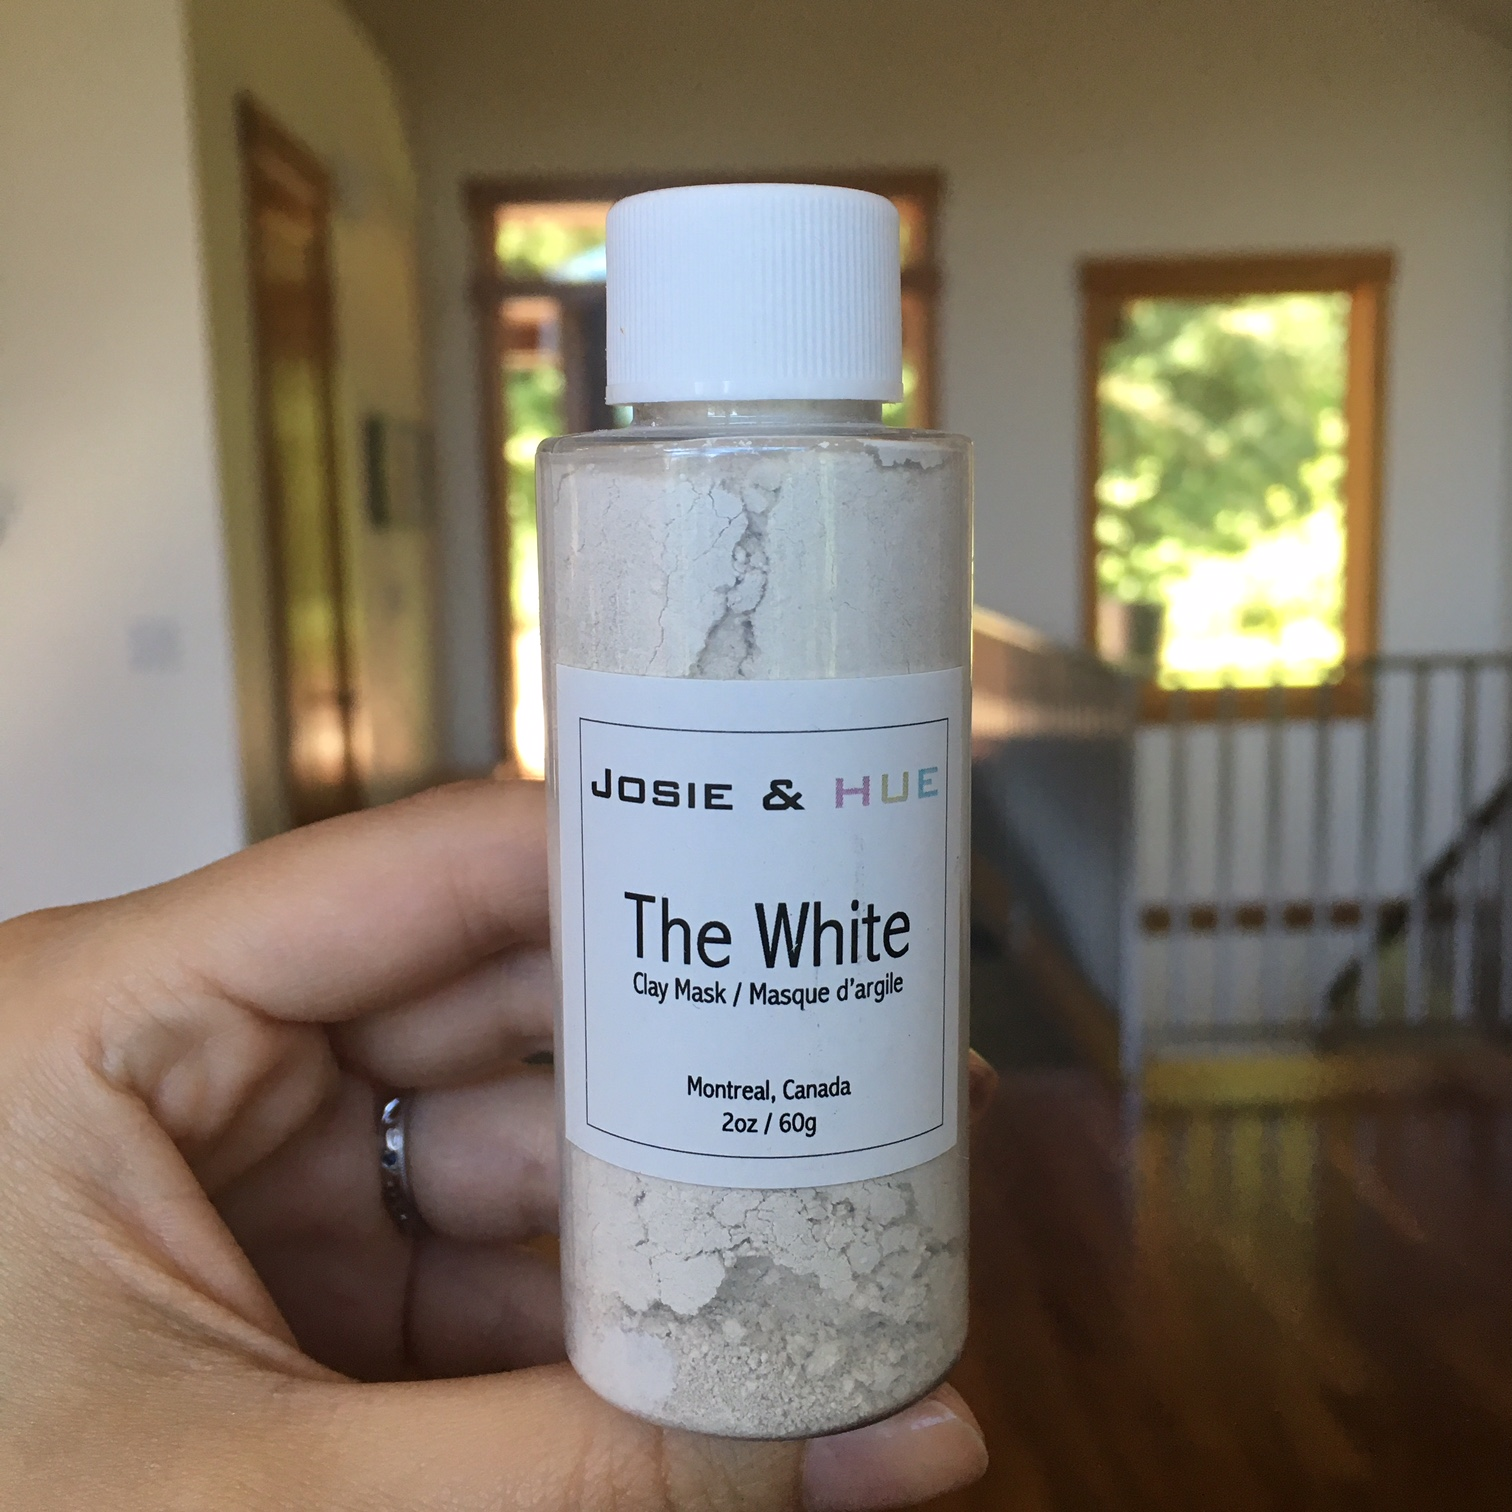 Josie and Hue white clay mask